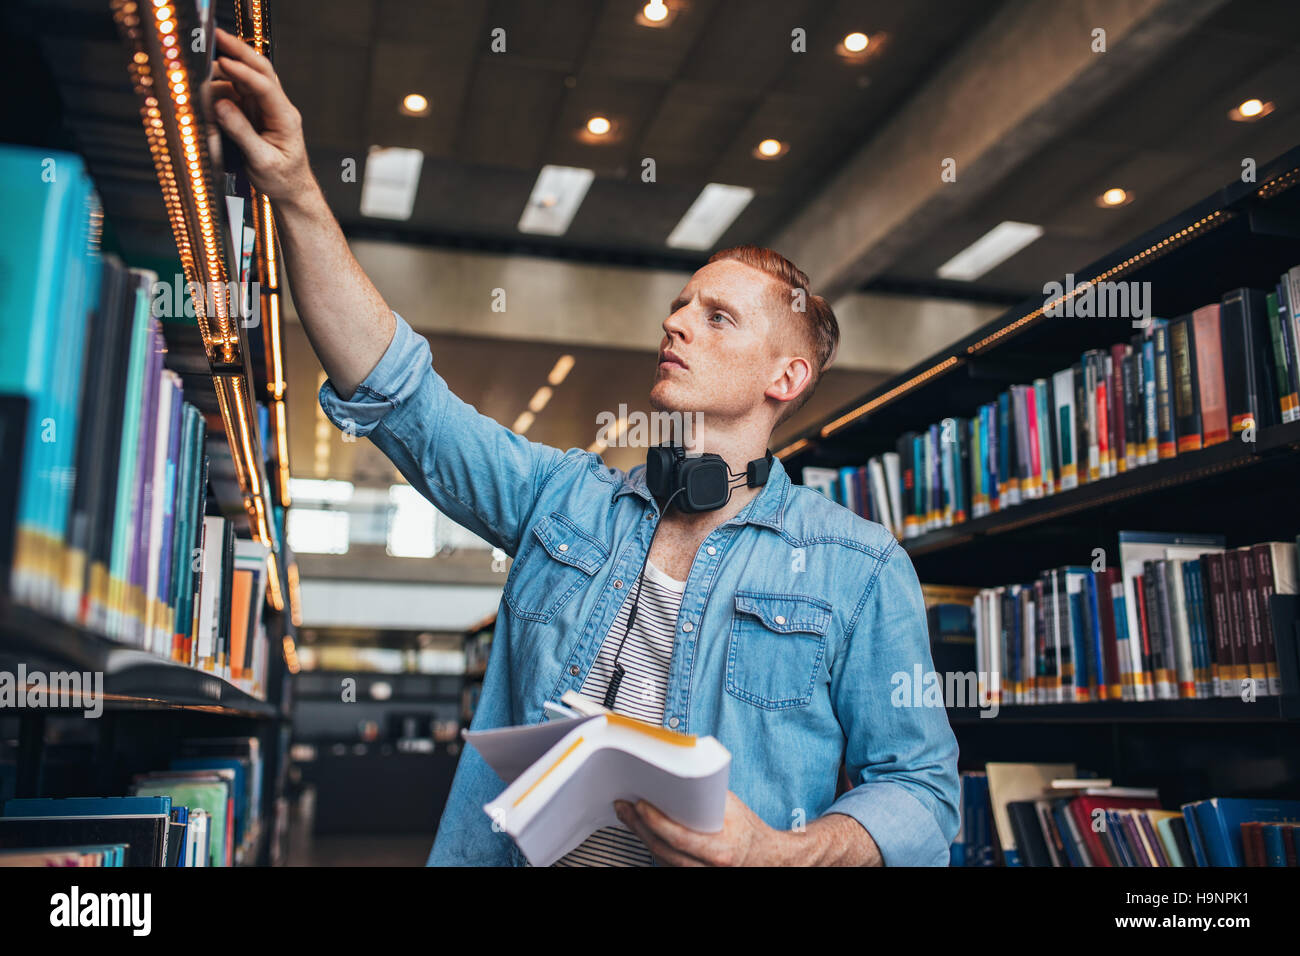 Shot of young male student selecting book from library shelf. University student studying in library. - Stock Image